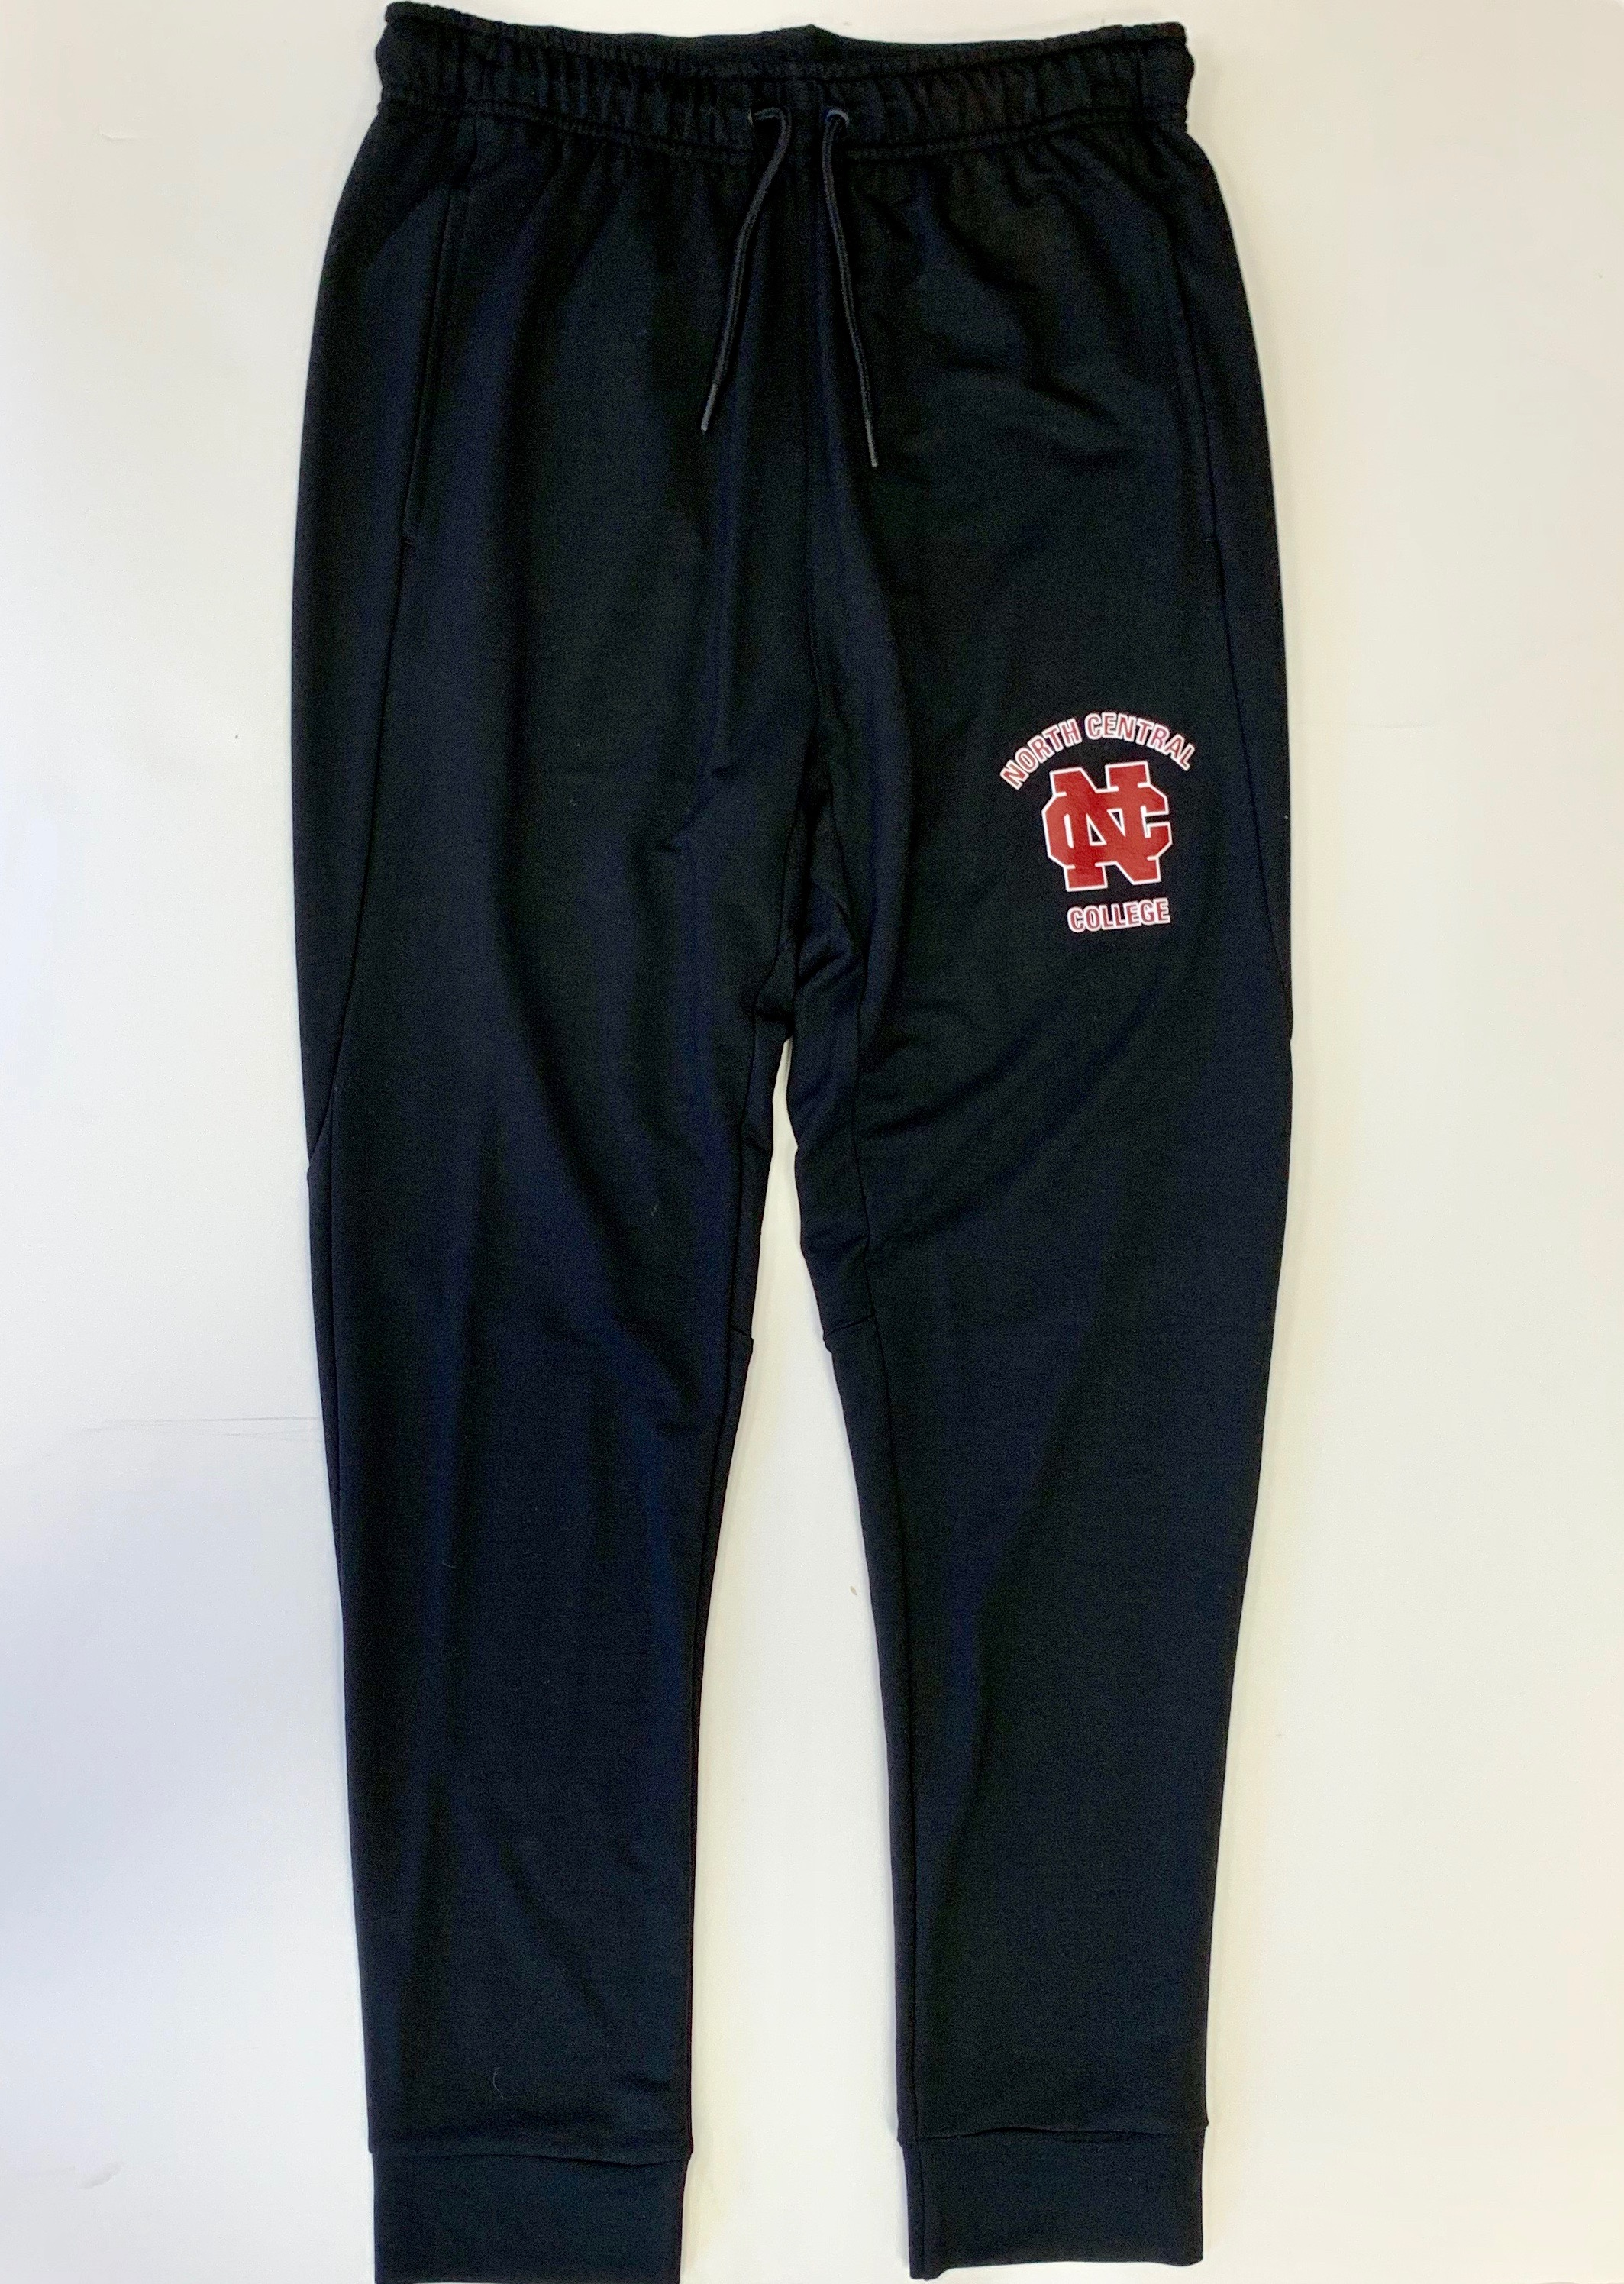 Image for the Clearance - Tri-Blend Jogger Pants product